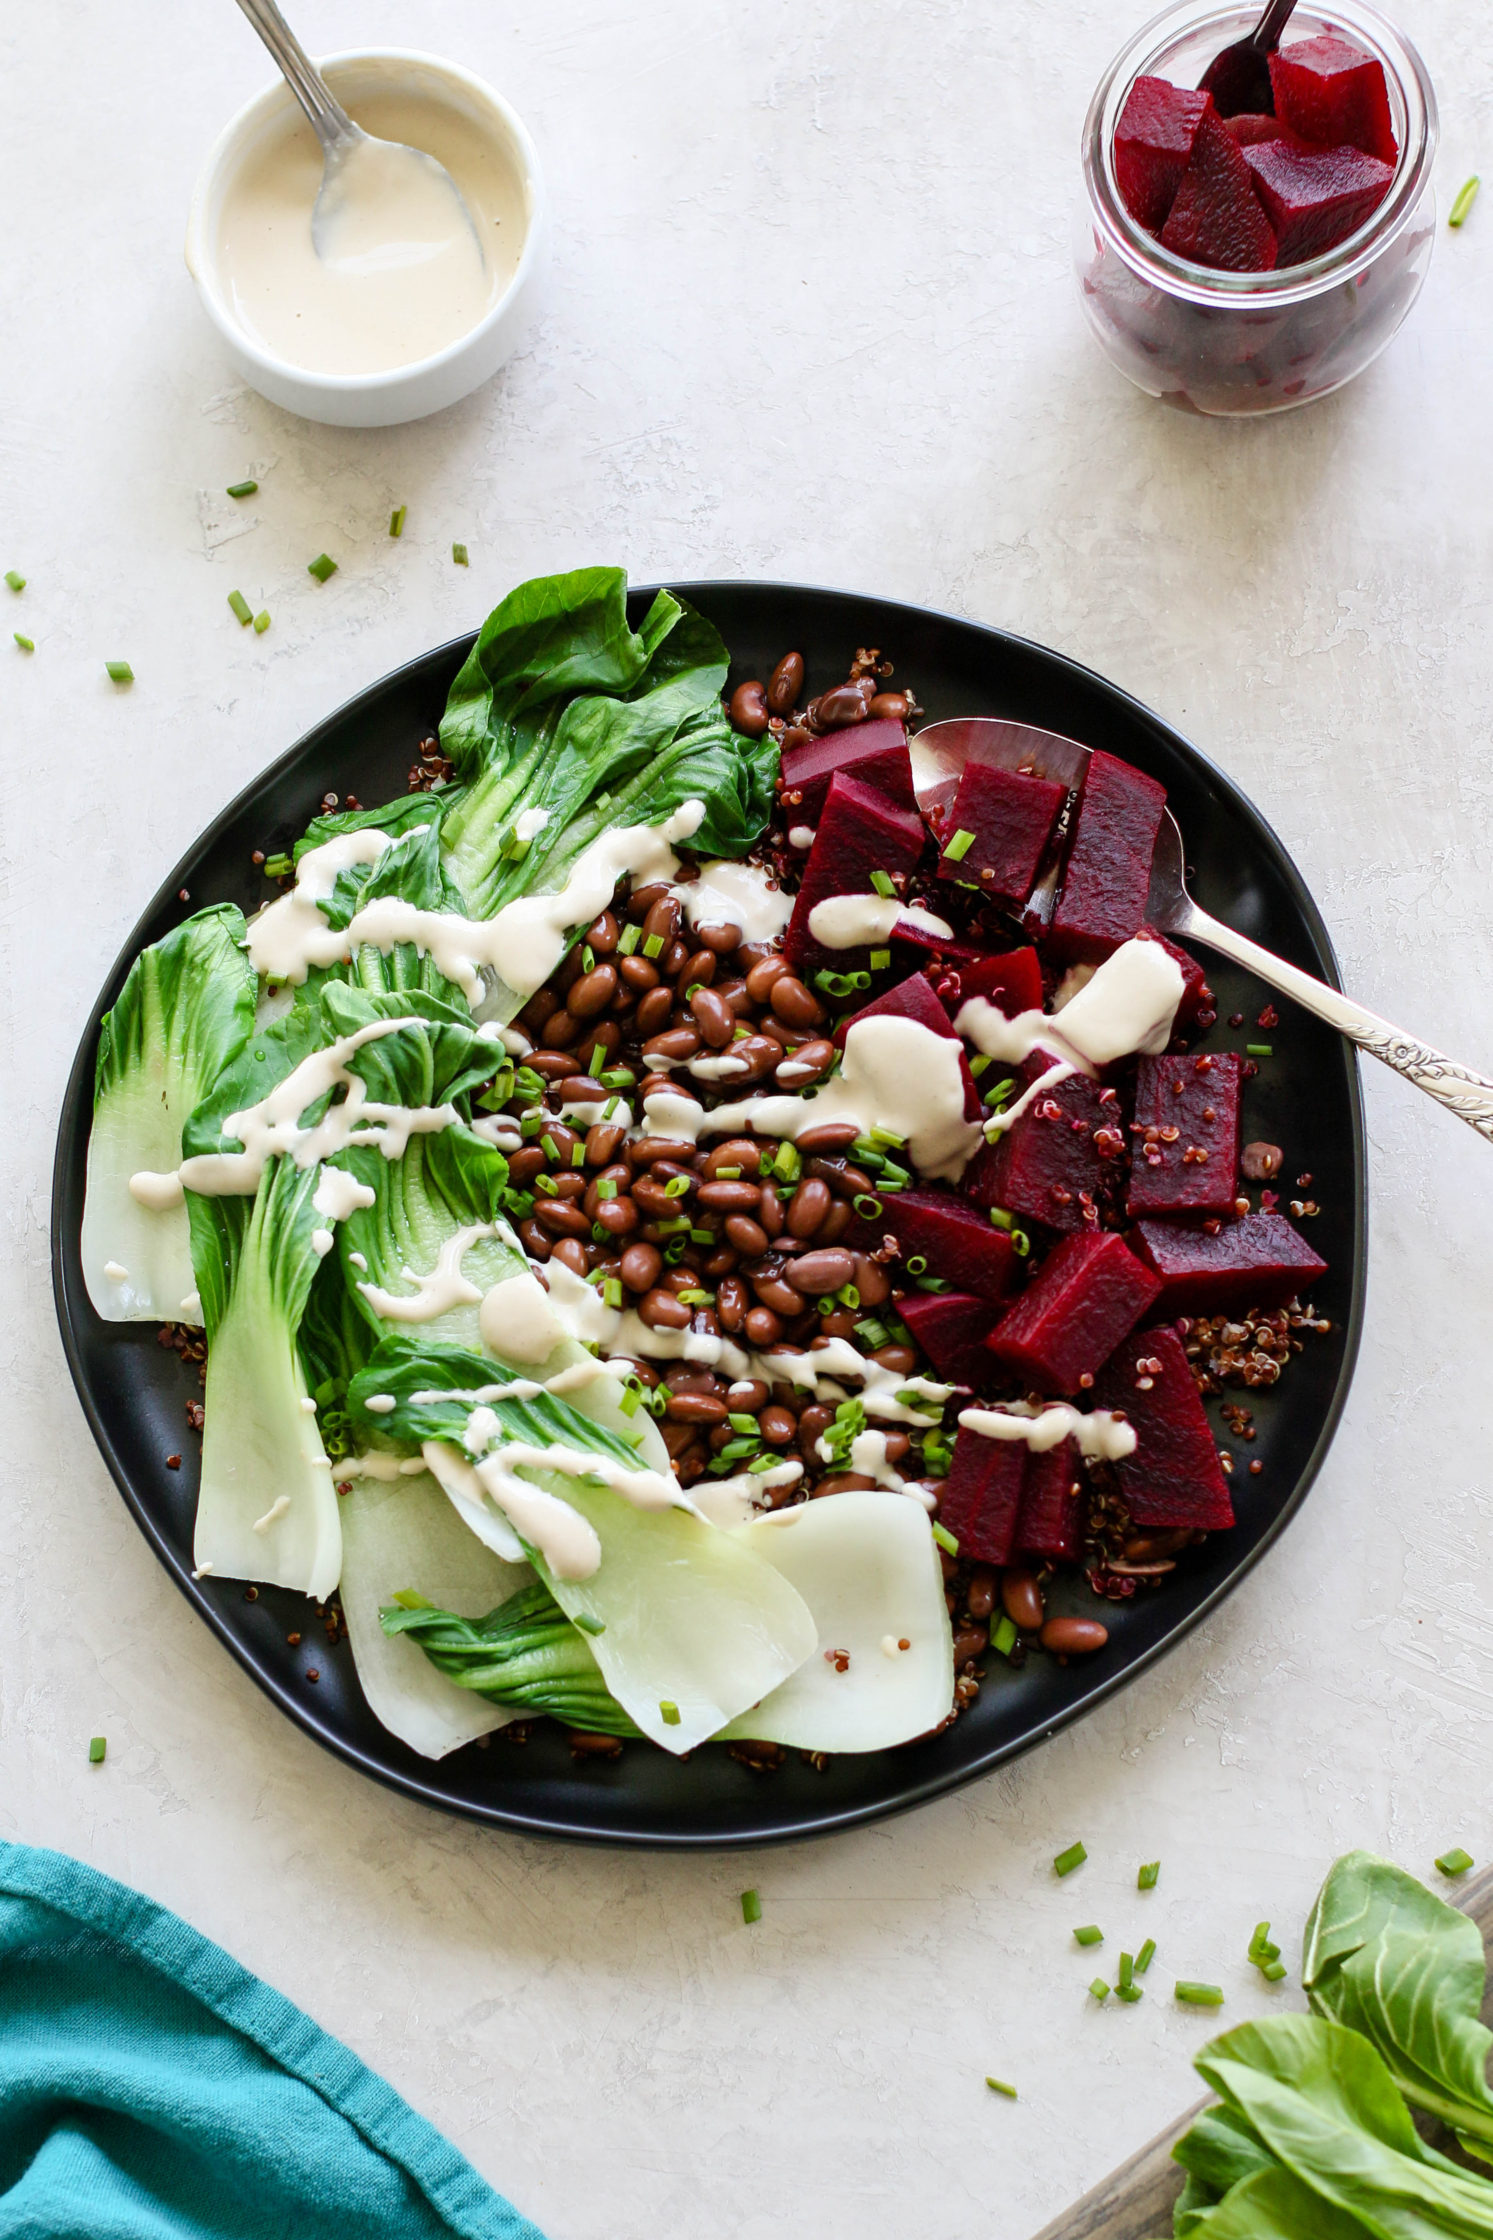 Black Soy Bean, Beet, & Bok Choy Bowl with Garlic Ginger Tahini Dressing (V, GF, OF)